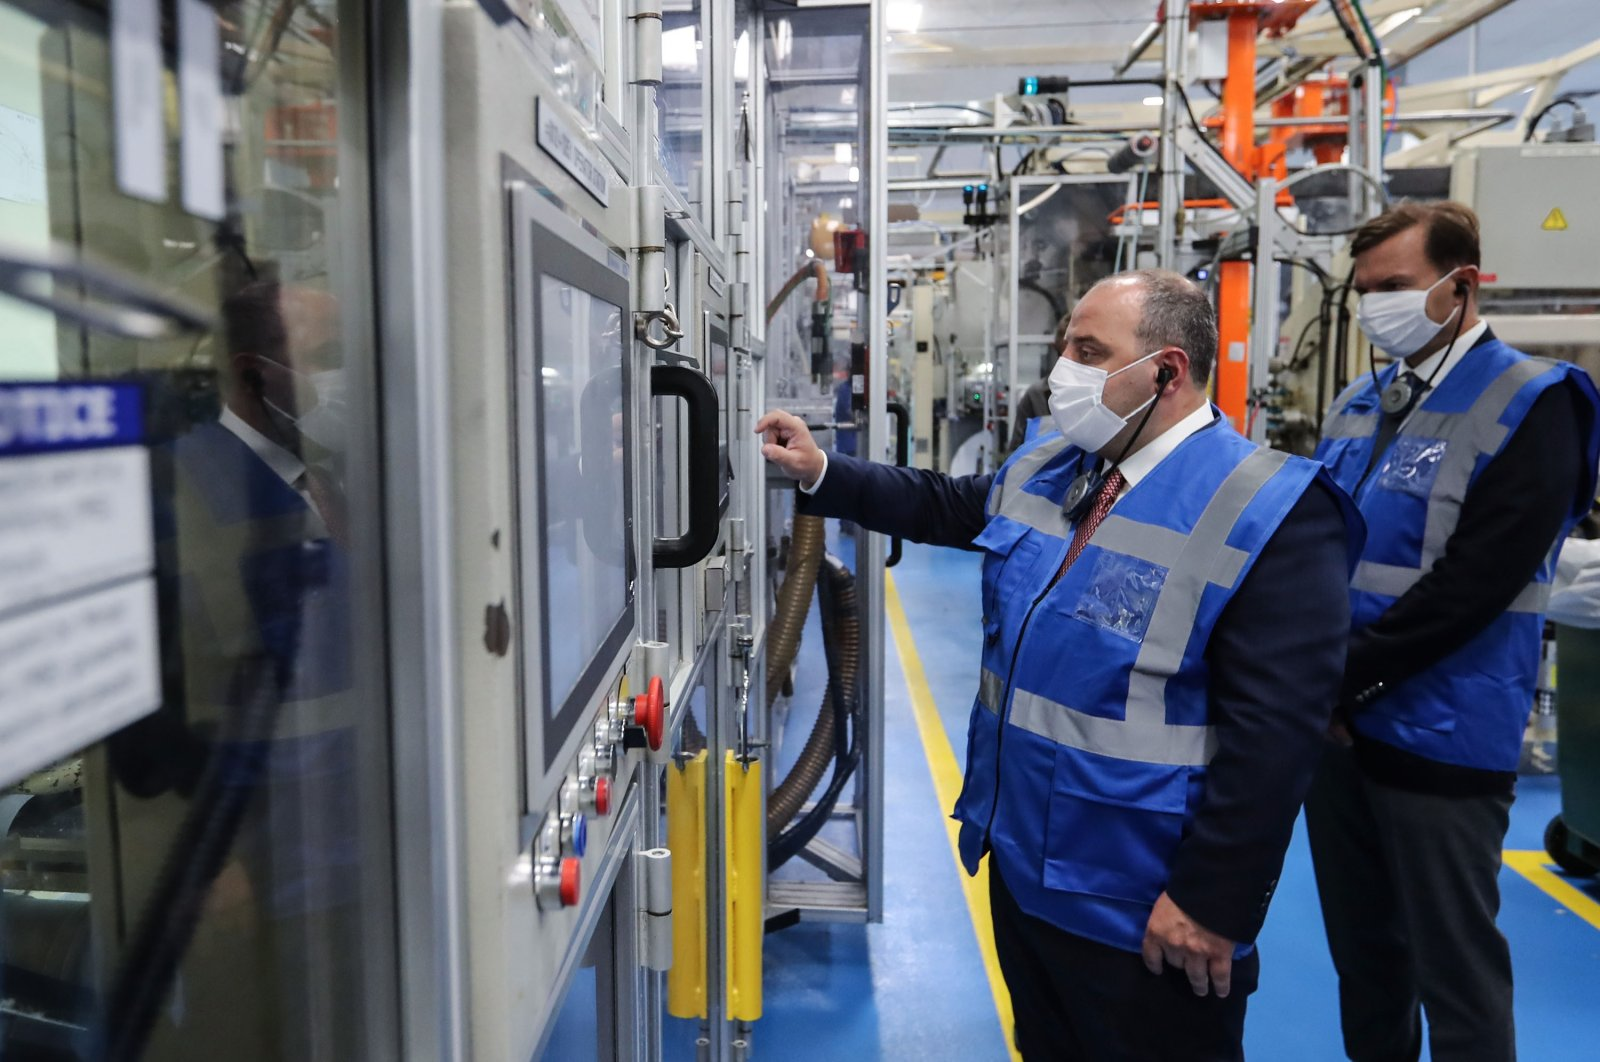 Turkish Industry and Technology Minister Mustafa Varank seen during his visit to cleaning and personal care products company P&G, which has important R&D projects, northwestern Gebze, Turkey, Sept. 11, 2020. (Industry and Technology Ministry via AA )